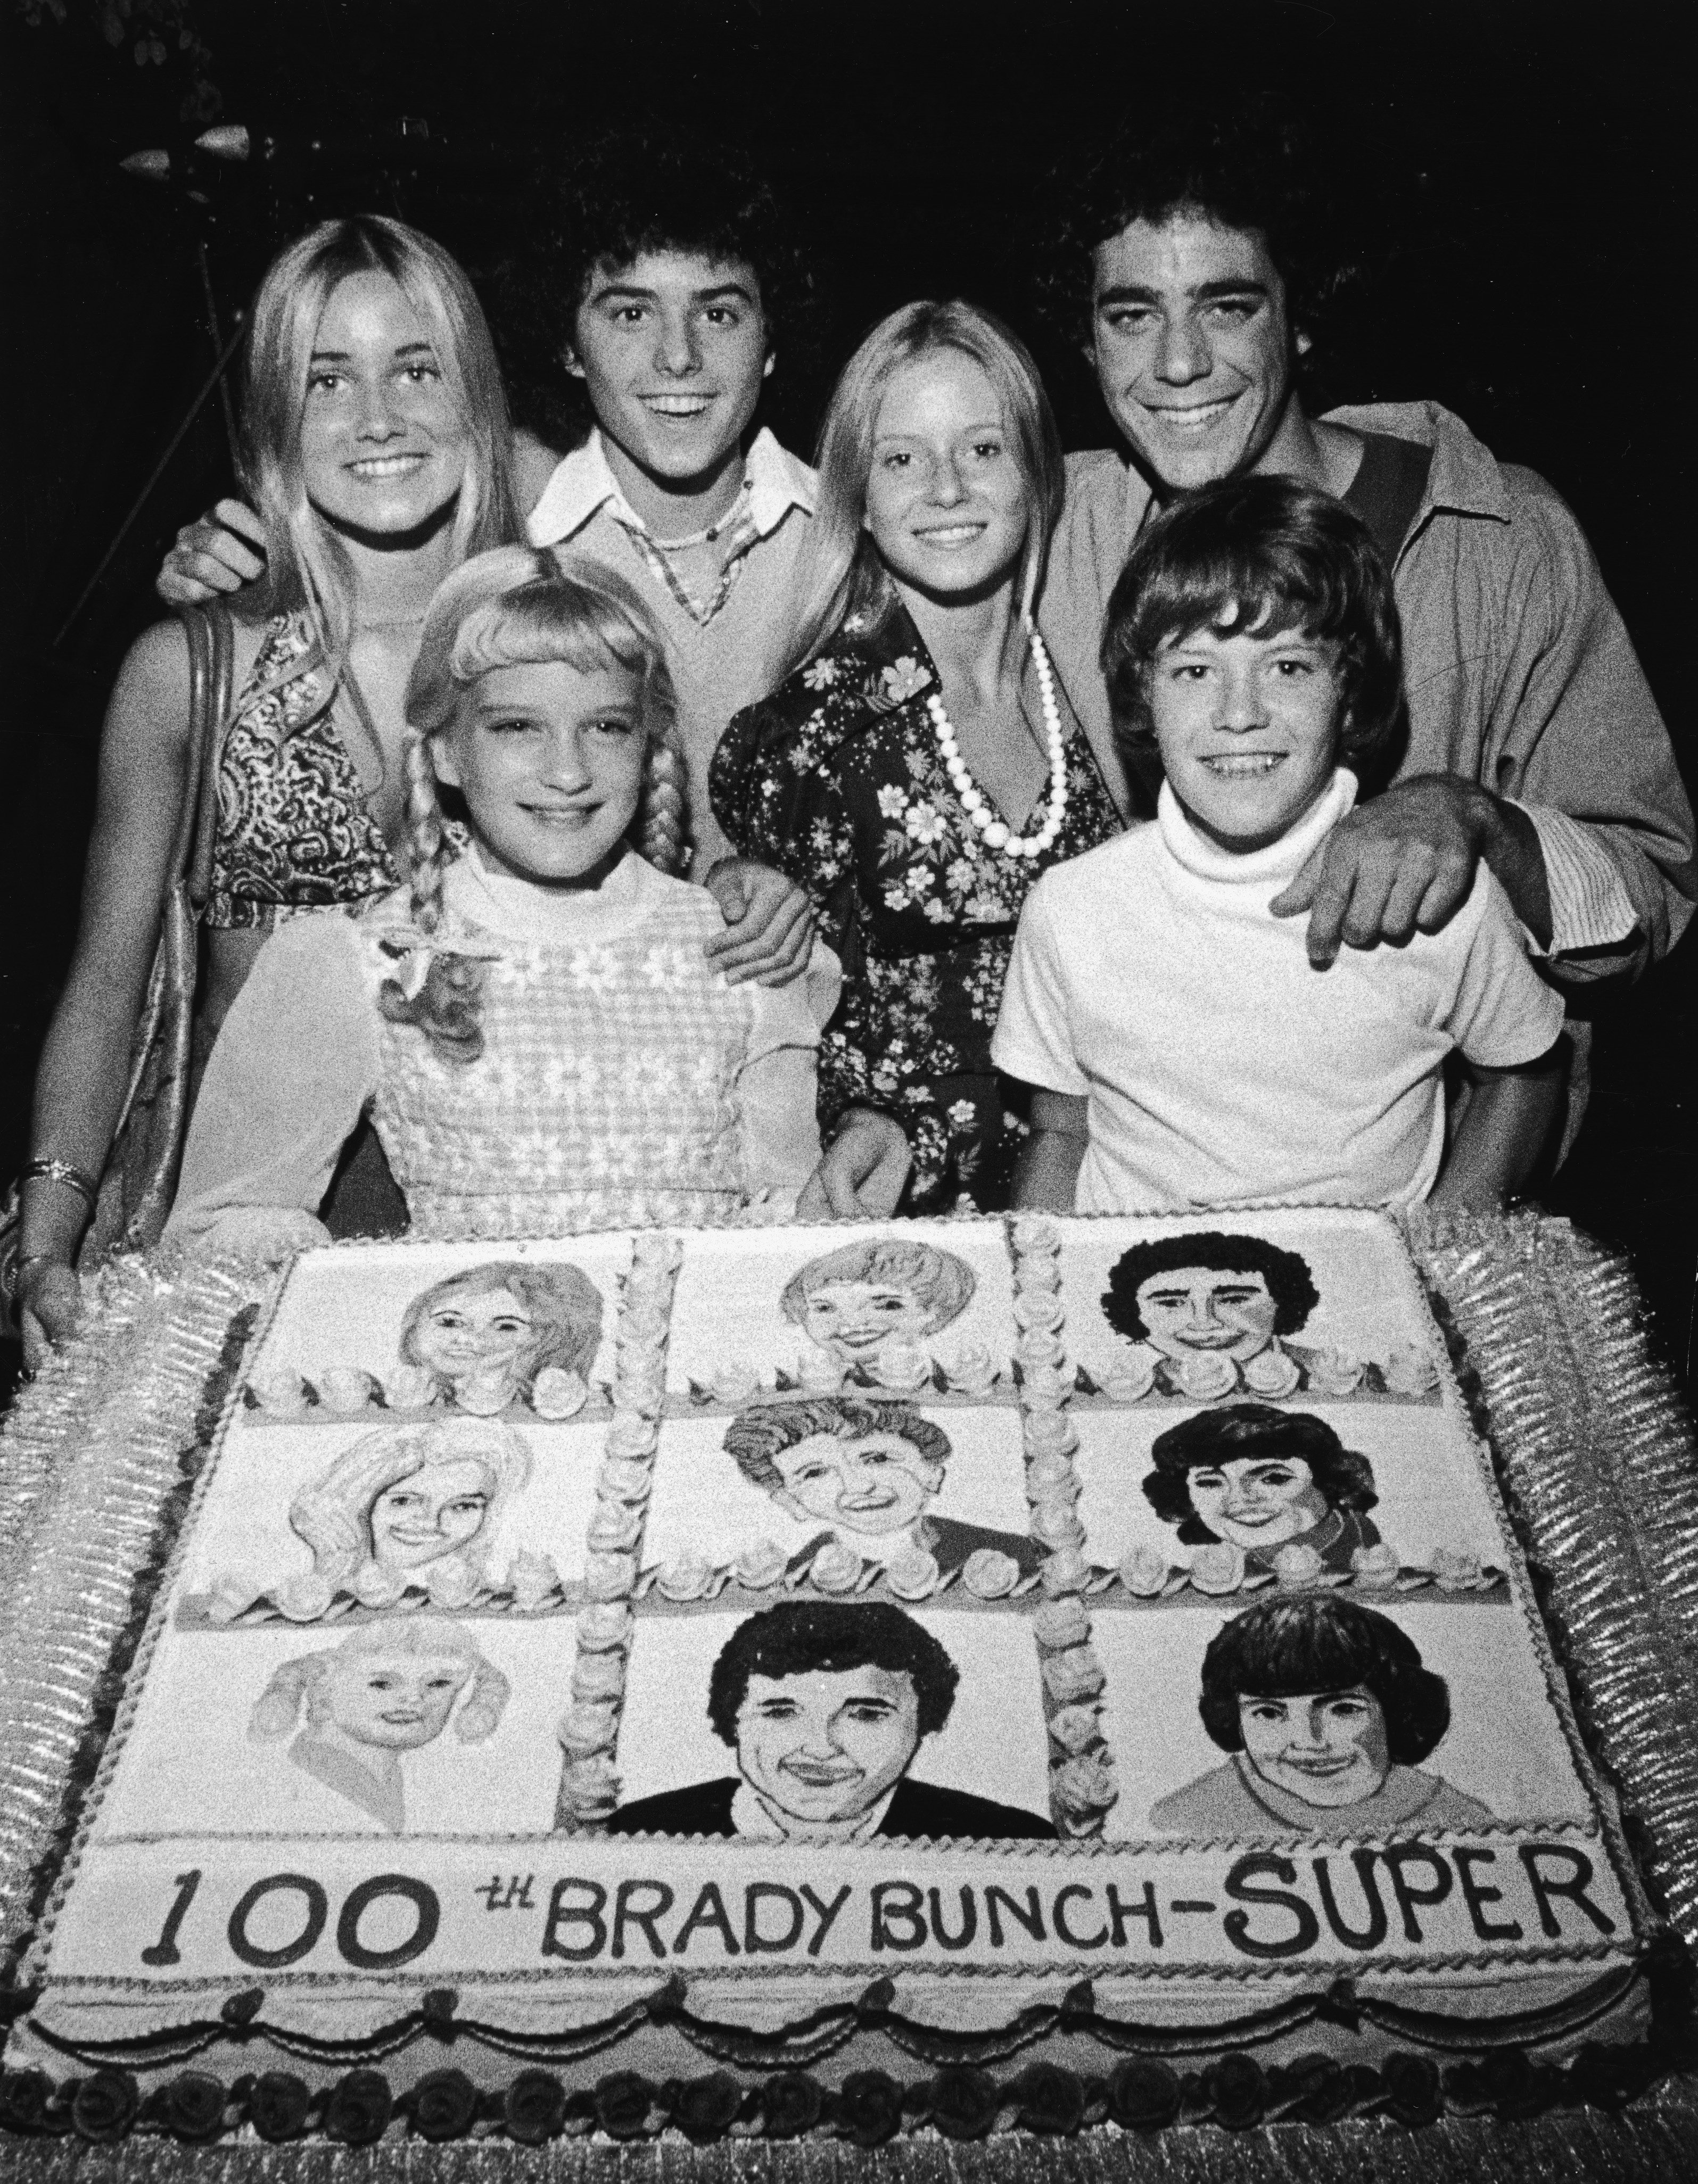 """Maureen McCormick, Susan Olsen, Christopher Knight, Eve Plumb, Barry Williams and Mike Lookinland pose with a cake in celebration of """"The Brady Bunch's"""" 100th episode   Photo: Getty Images"""